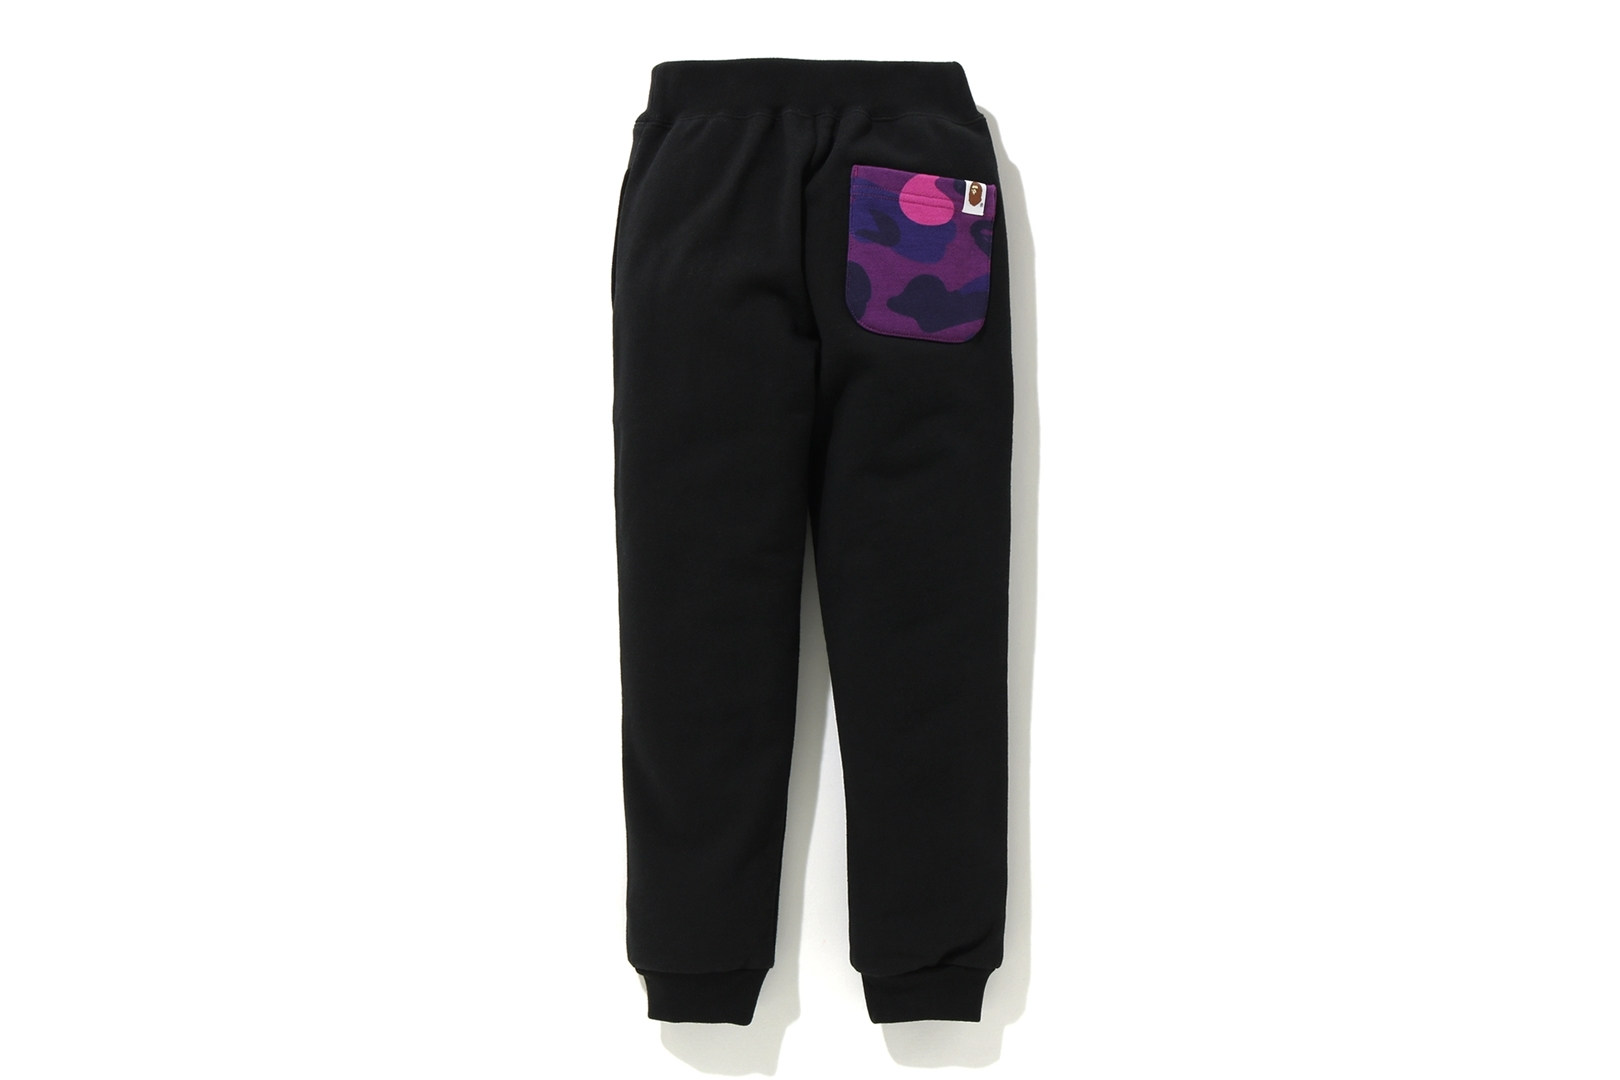 SHARK SLIM SWEAT PANTS_a0174495_12133334.jpg